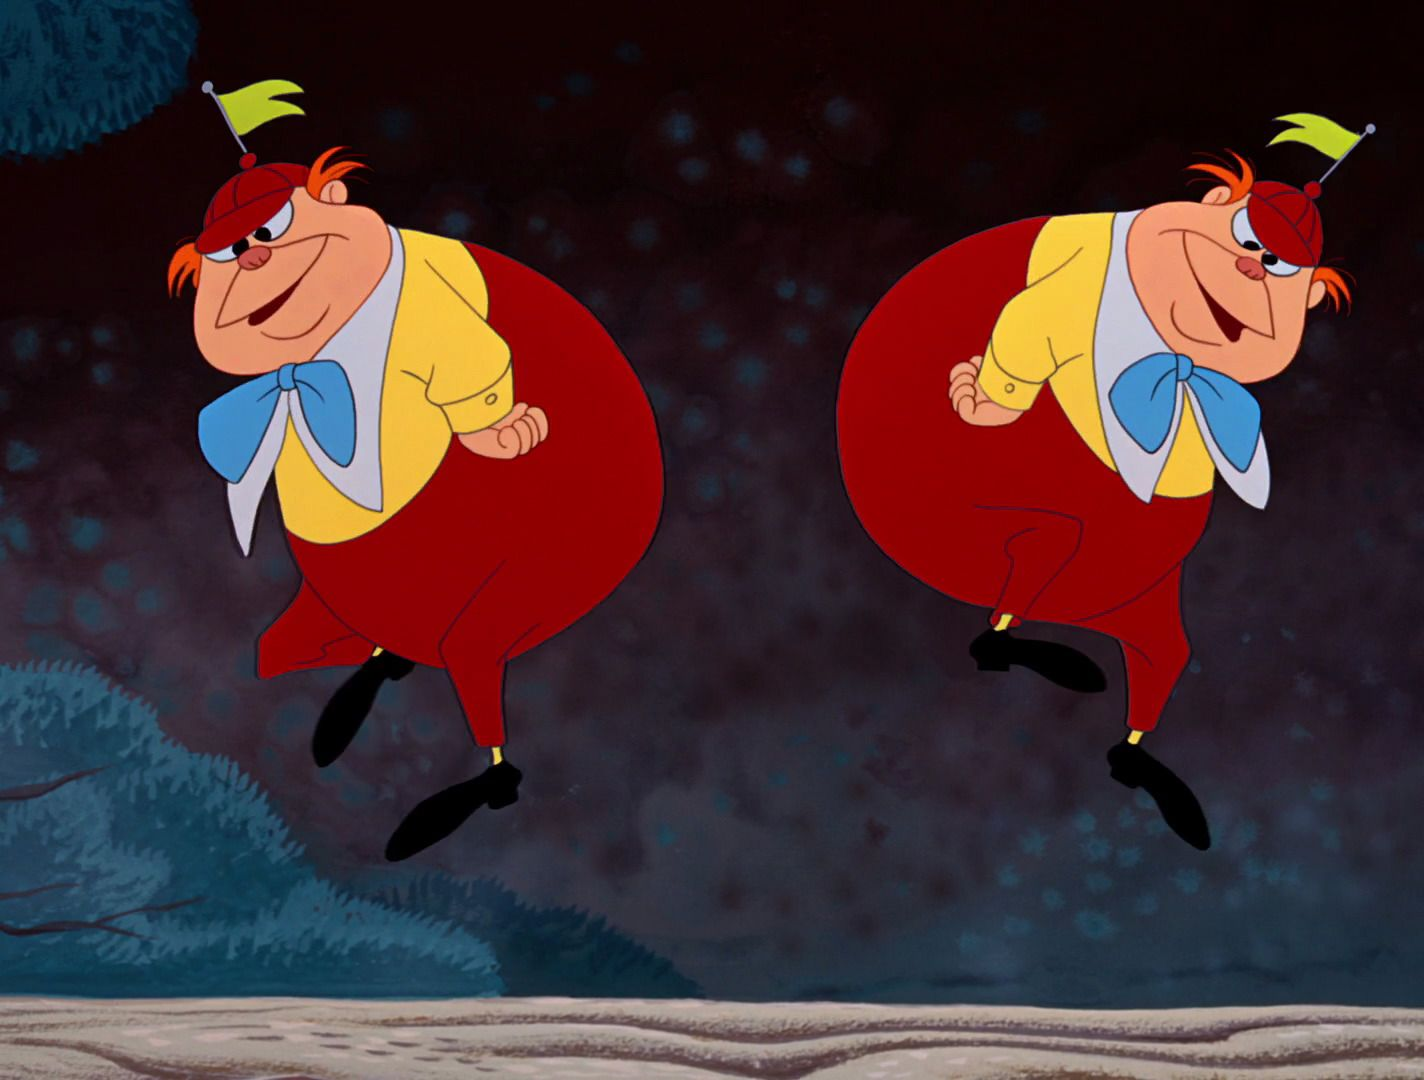 Alice in Wonderland (1951) - Disney Screencaps